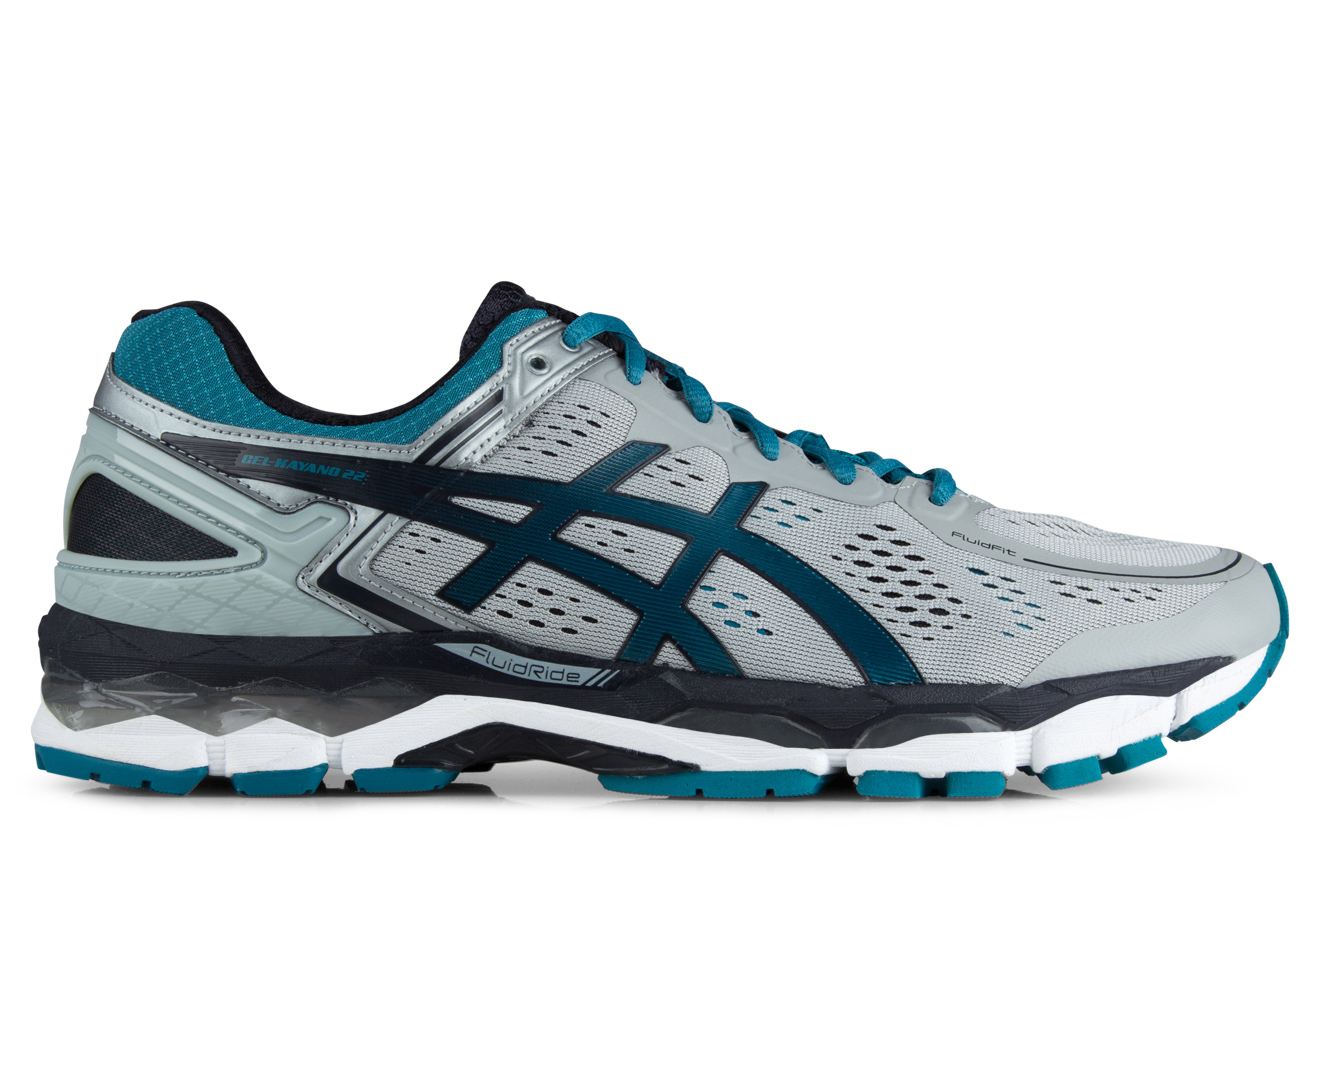 ... Catch.com.au ASICS Mens GEL-Kayano 22 Shoe - Silver GreyOcean DepthSky  ...